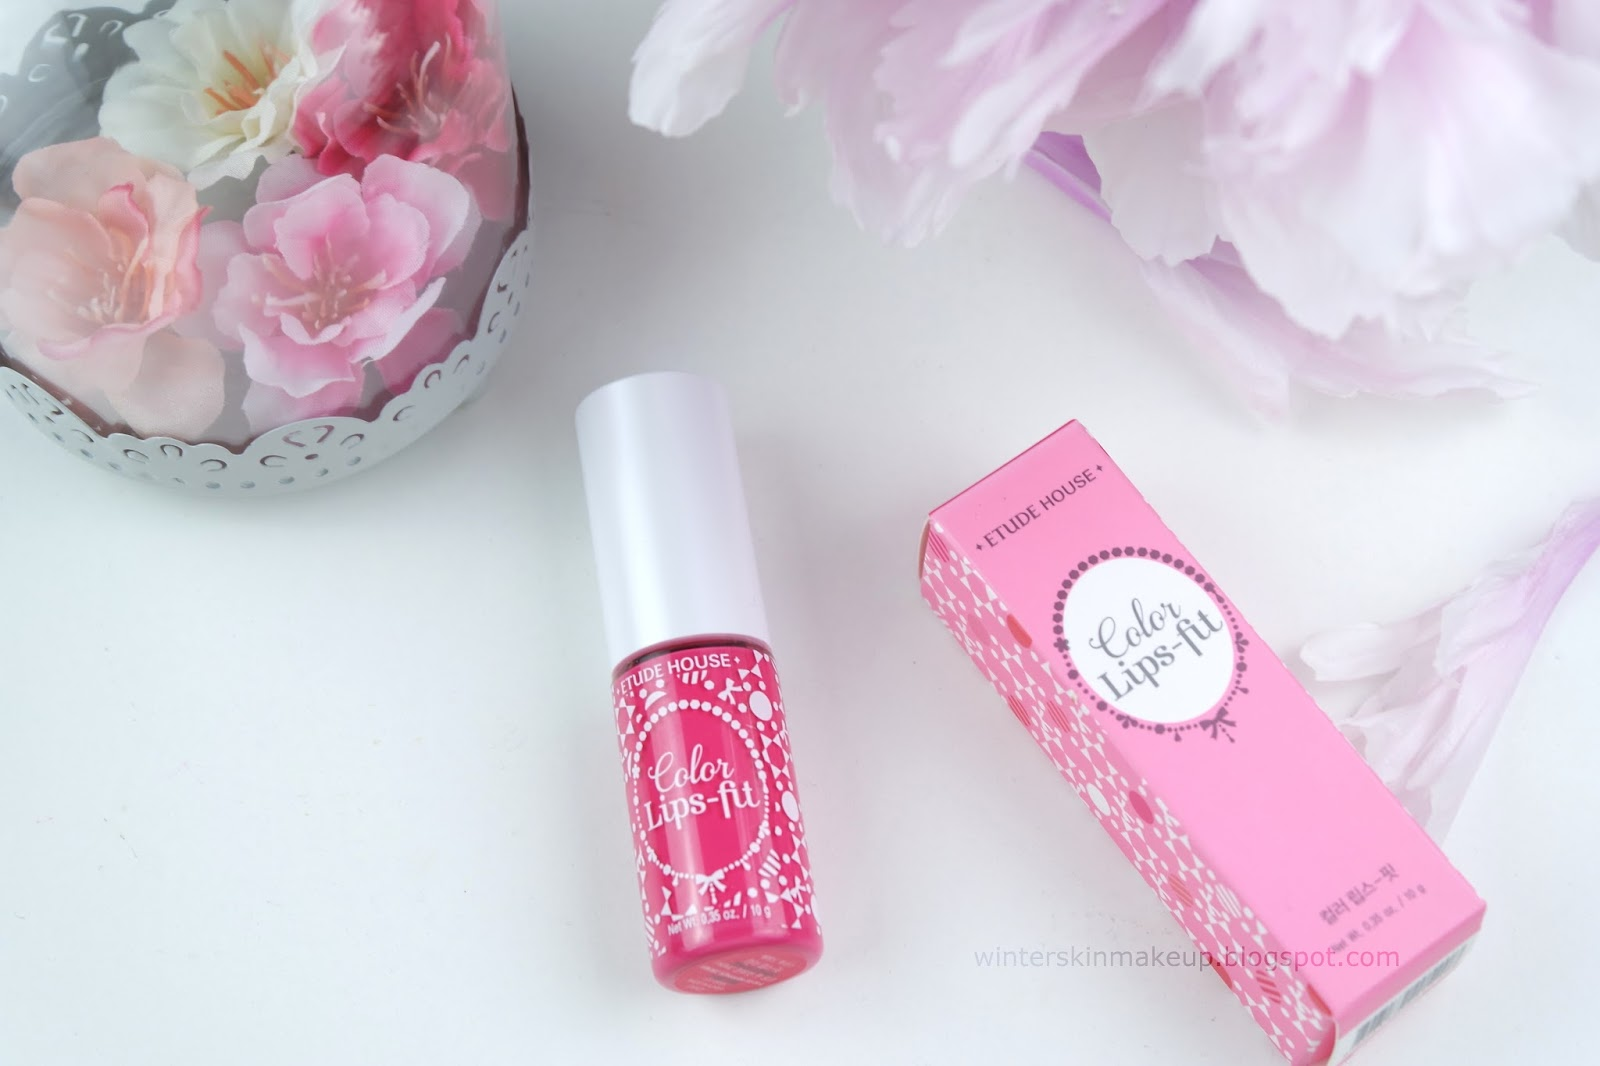 Etude House Color Lips Fit - Silhouette Pink